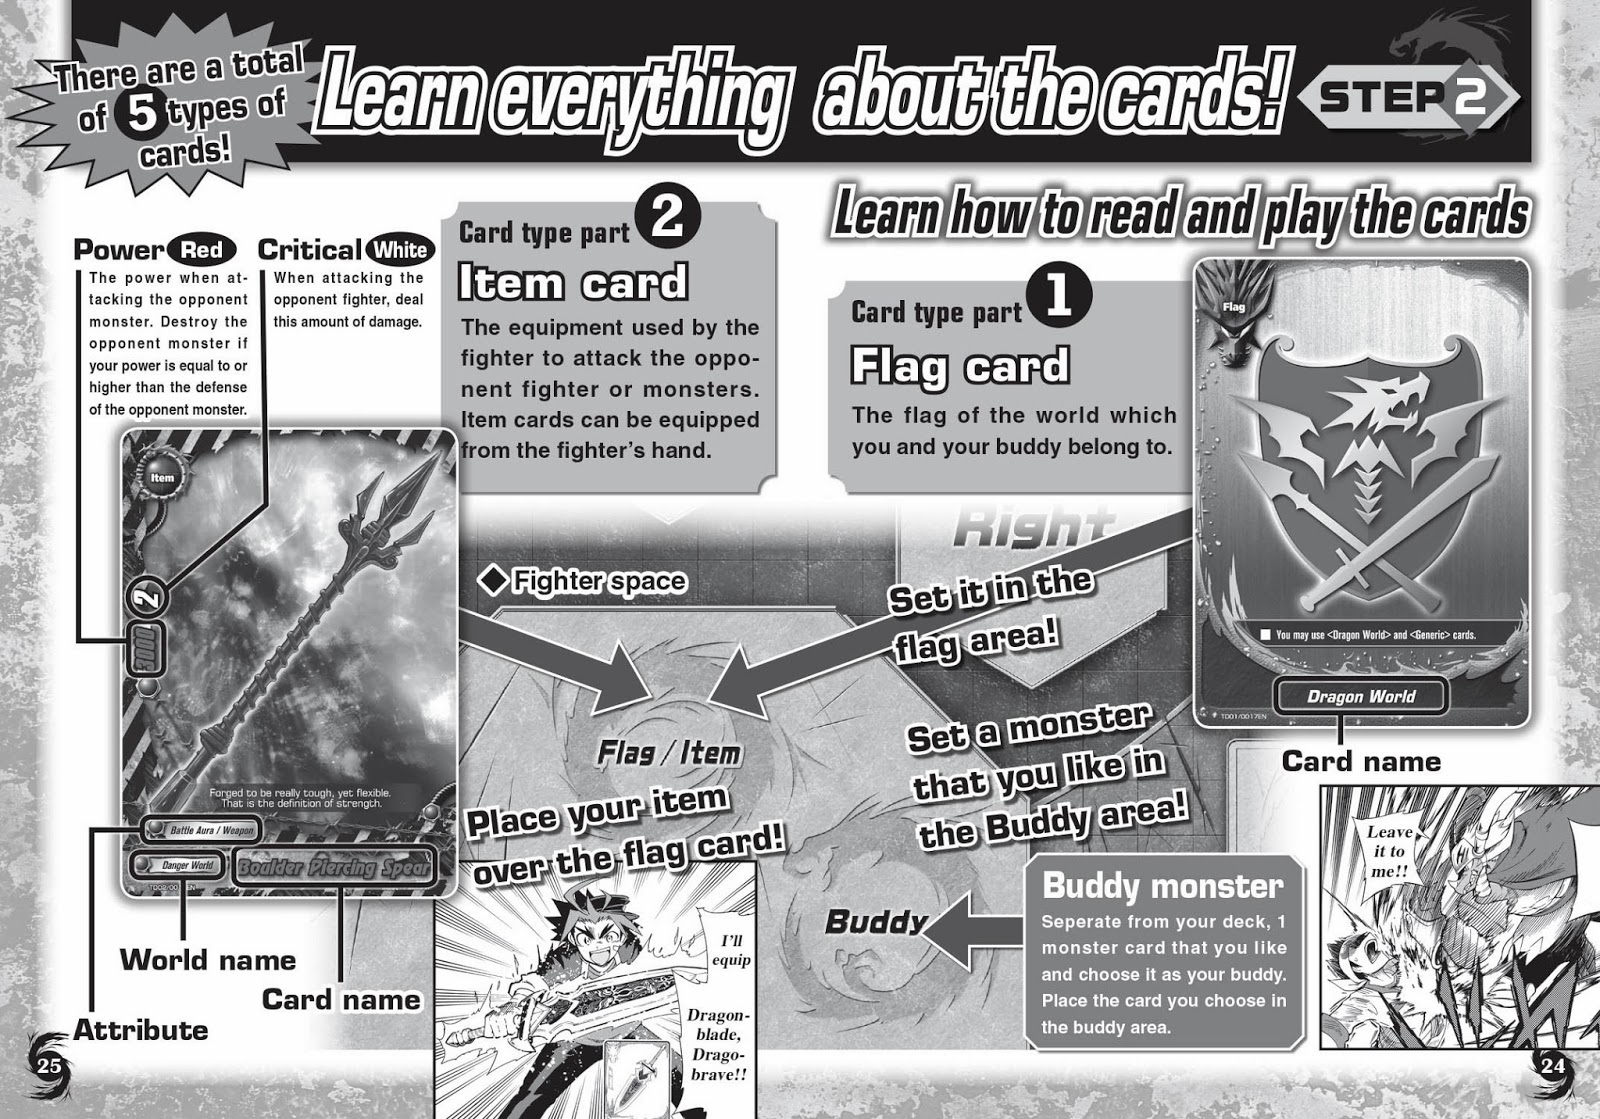 Singapore Future Card Buddyfight Online Official Rules For Future